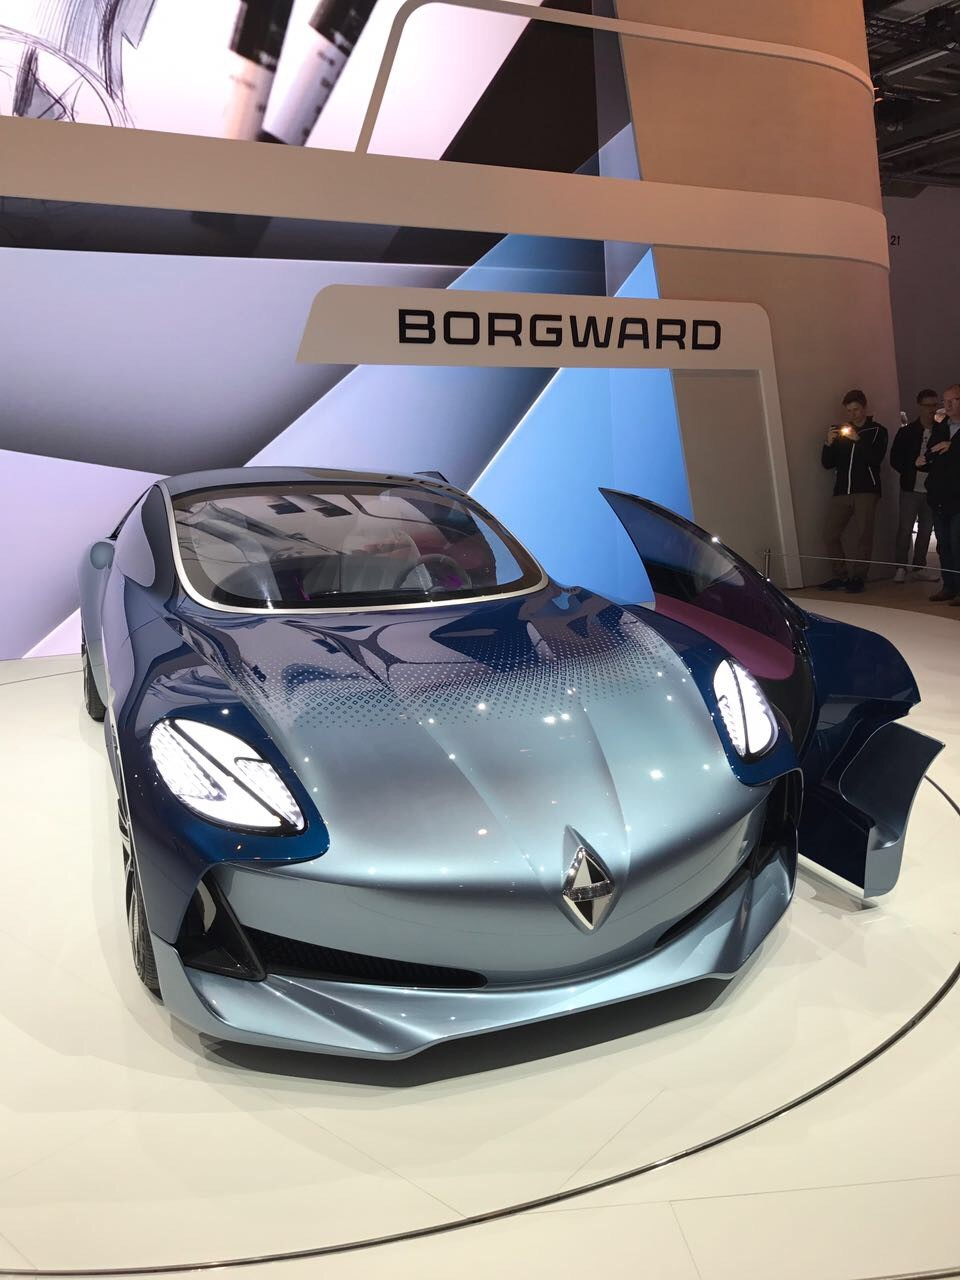 Sino-German luxury carmaker Borgward unveiled a sporty Isabella concept car.